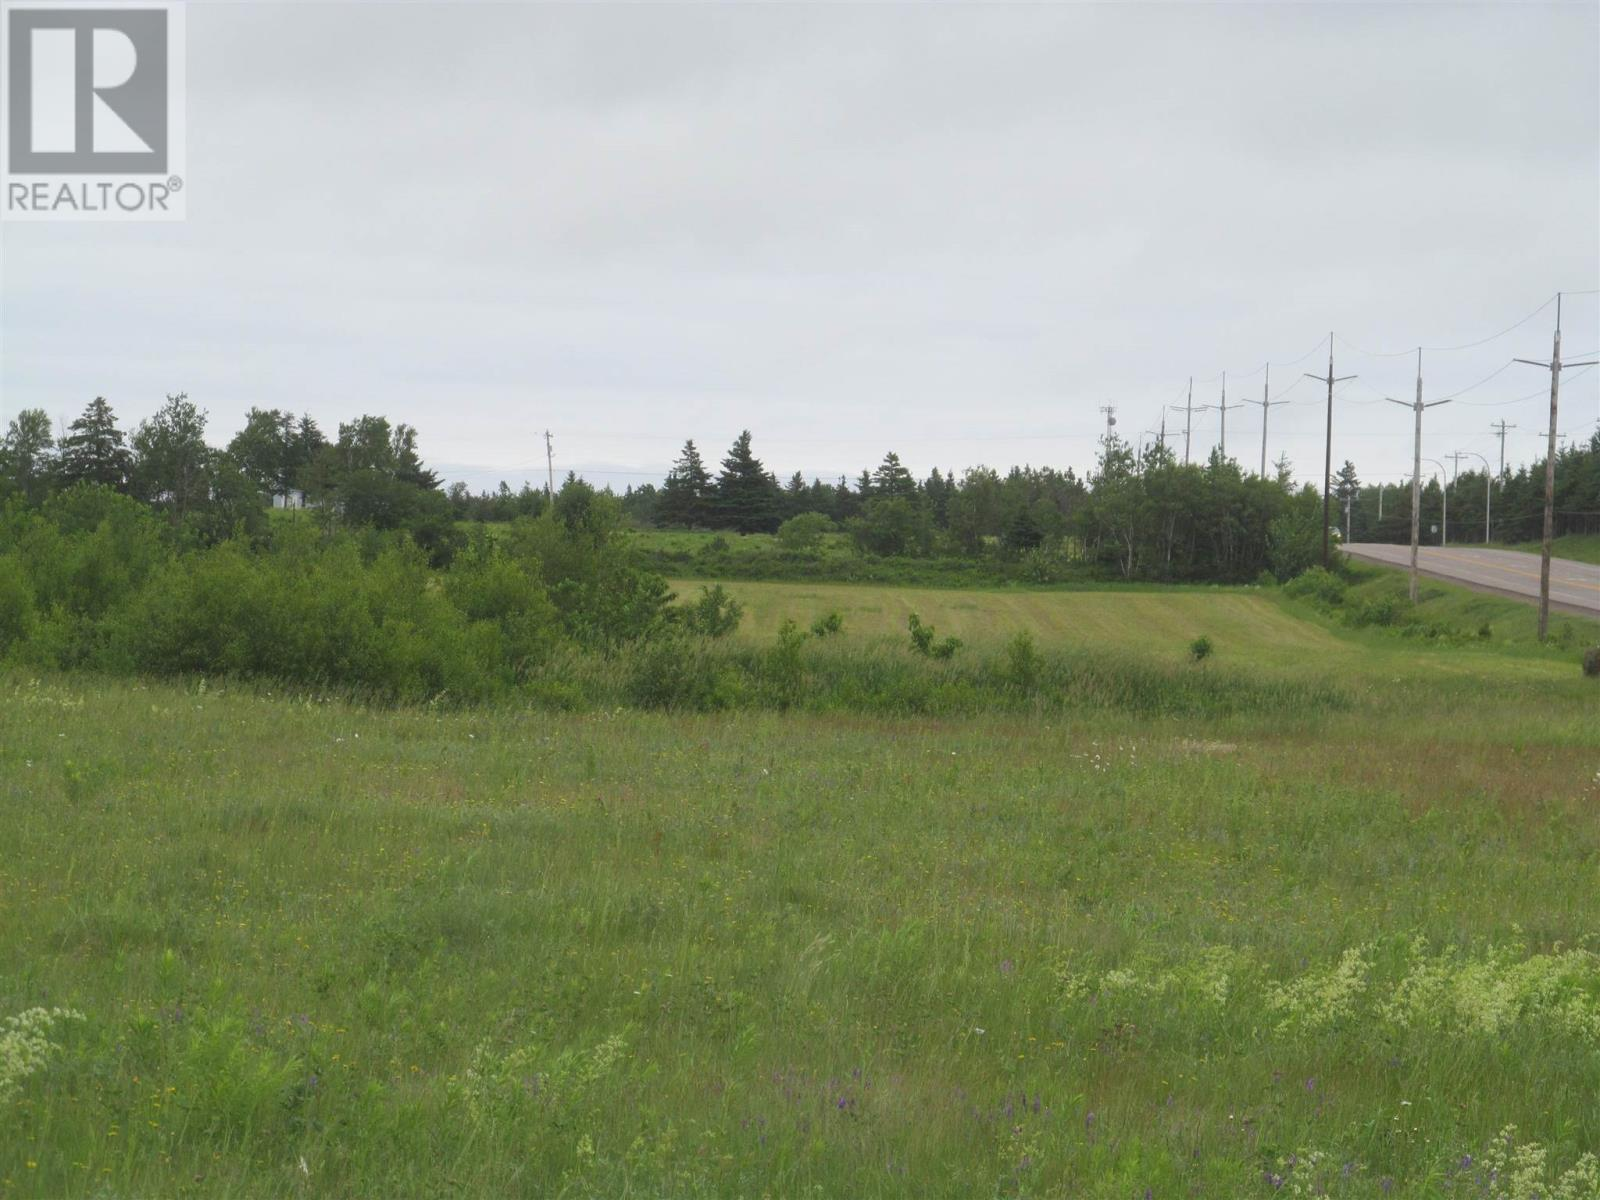 9186 St. Peter's Road, Canavoy, Prince Edward Island  C0A 1T0 - Photo 4 - 202116229